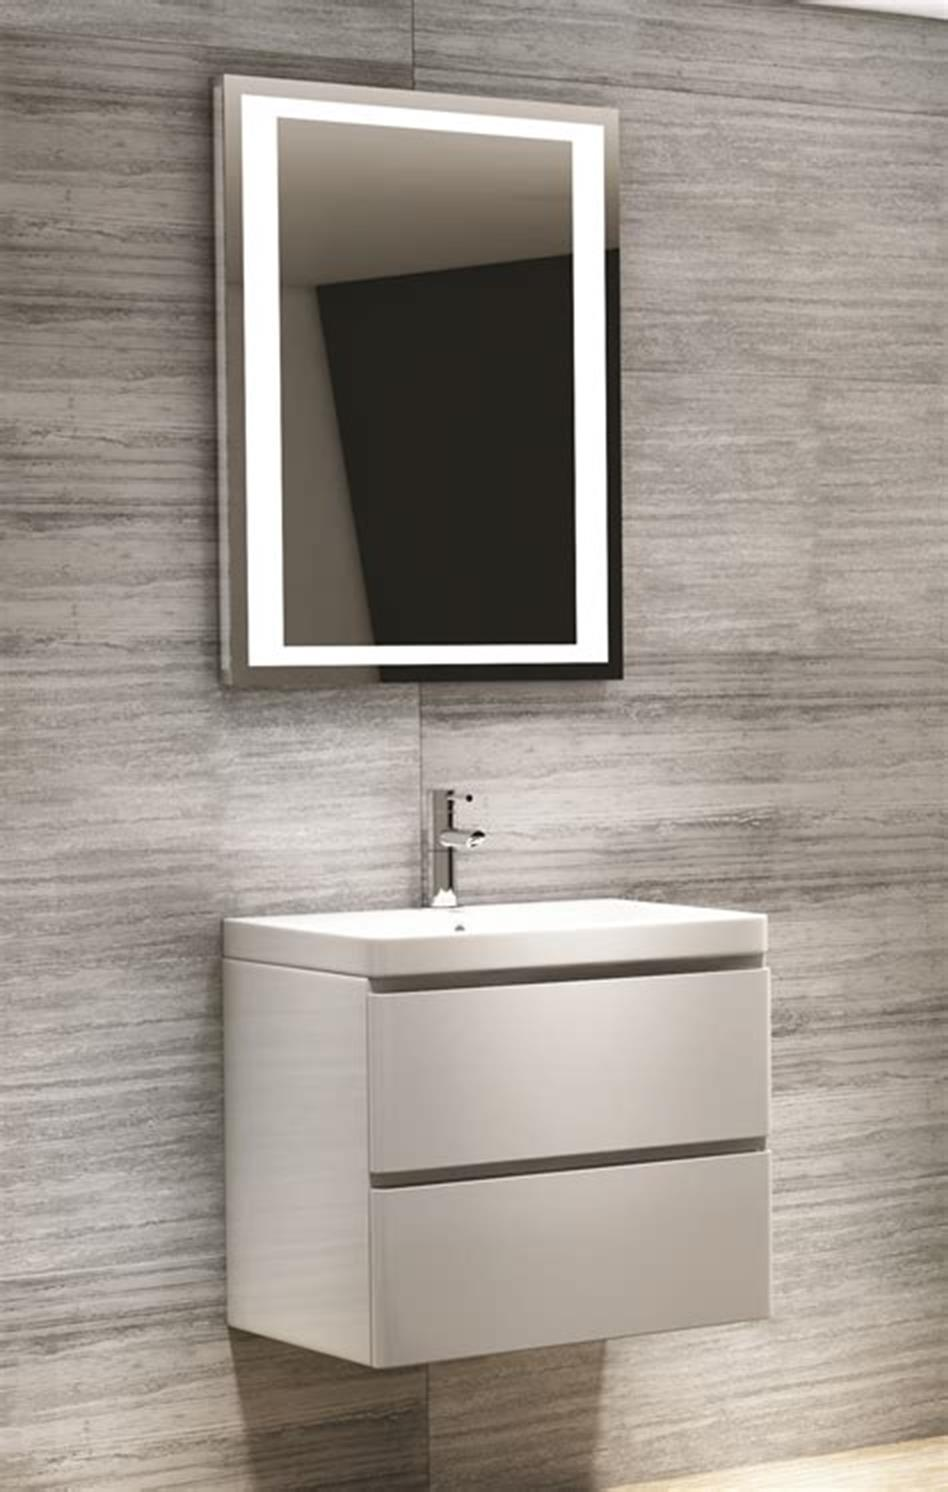 35 Best Wall Mounted Vanities For Small Bathrooms 2019 2